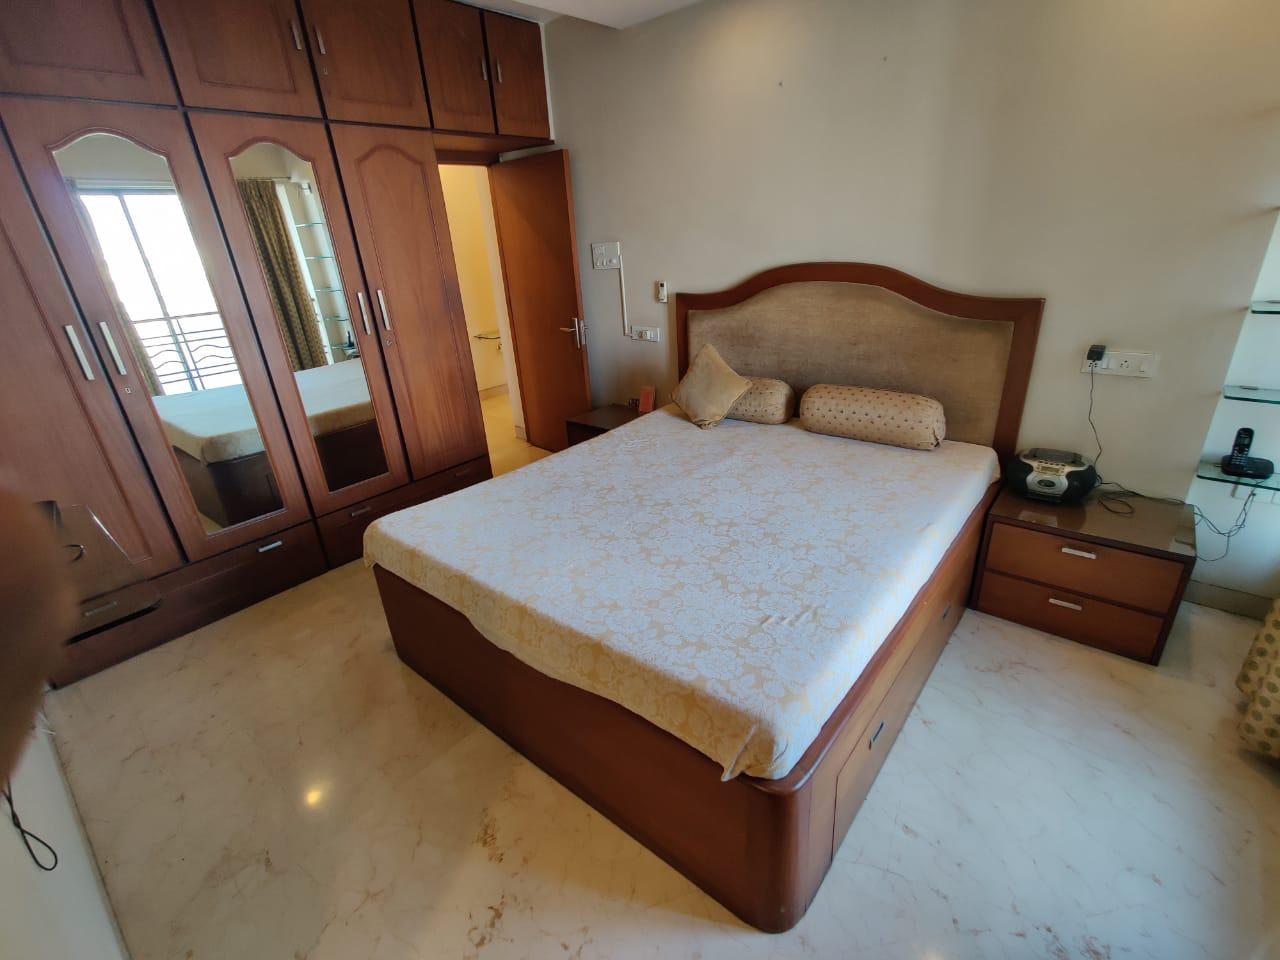 2 Bhk for Sale in Tardeo @ 7 Cr